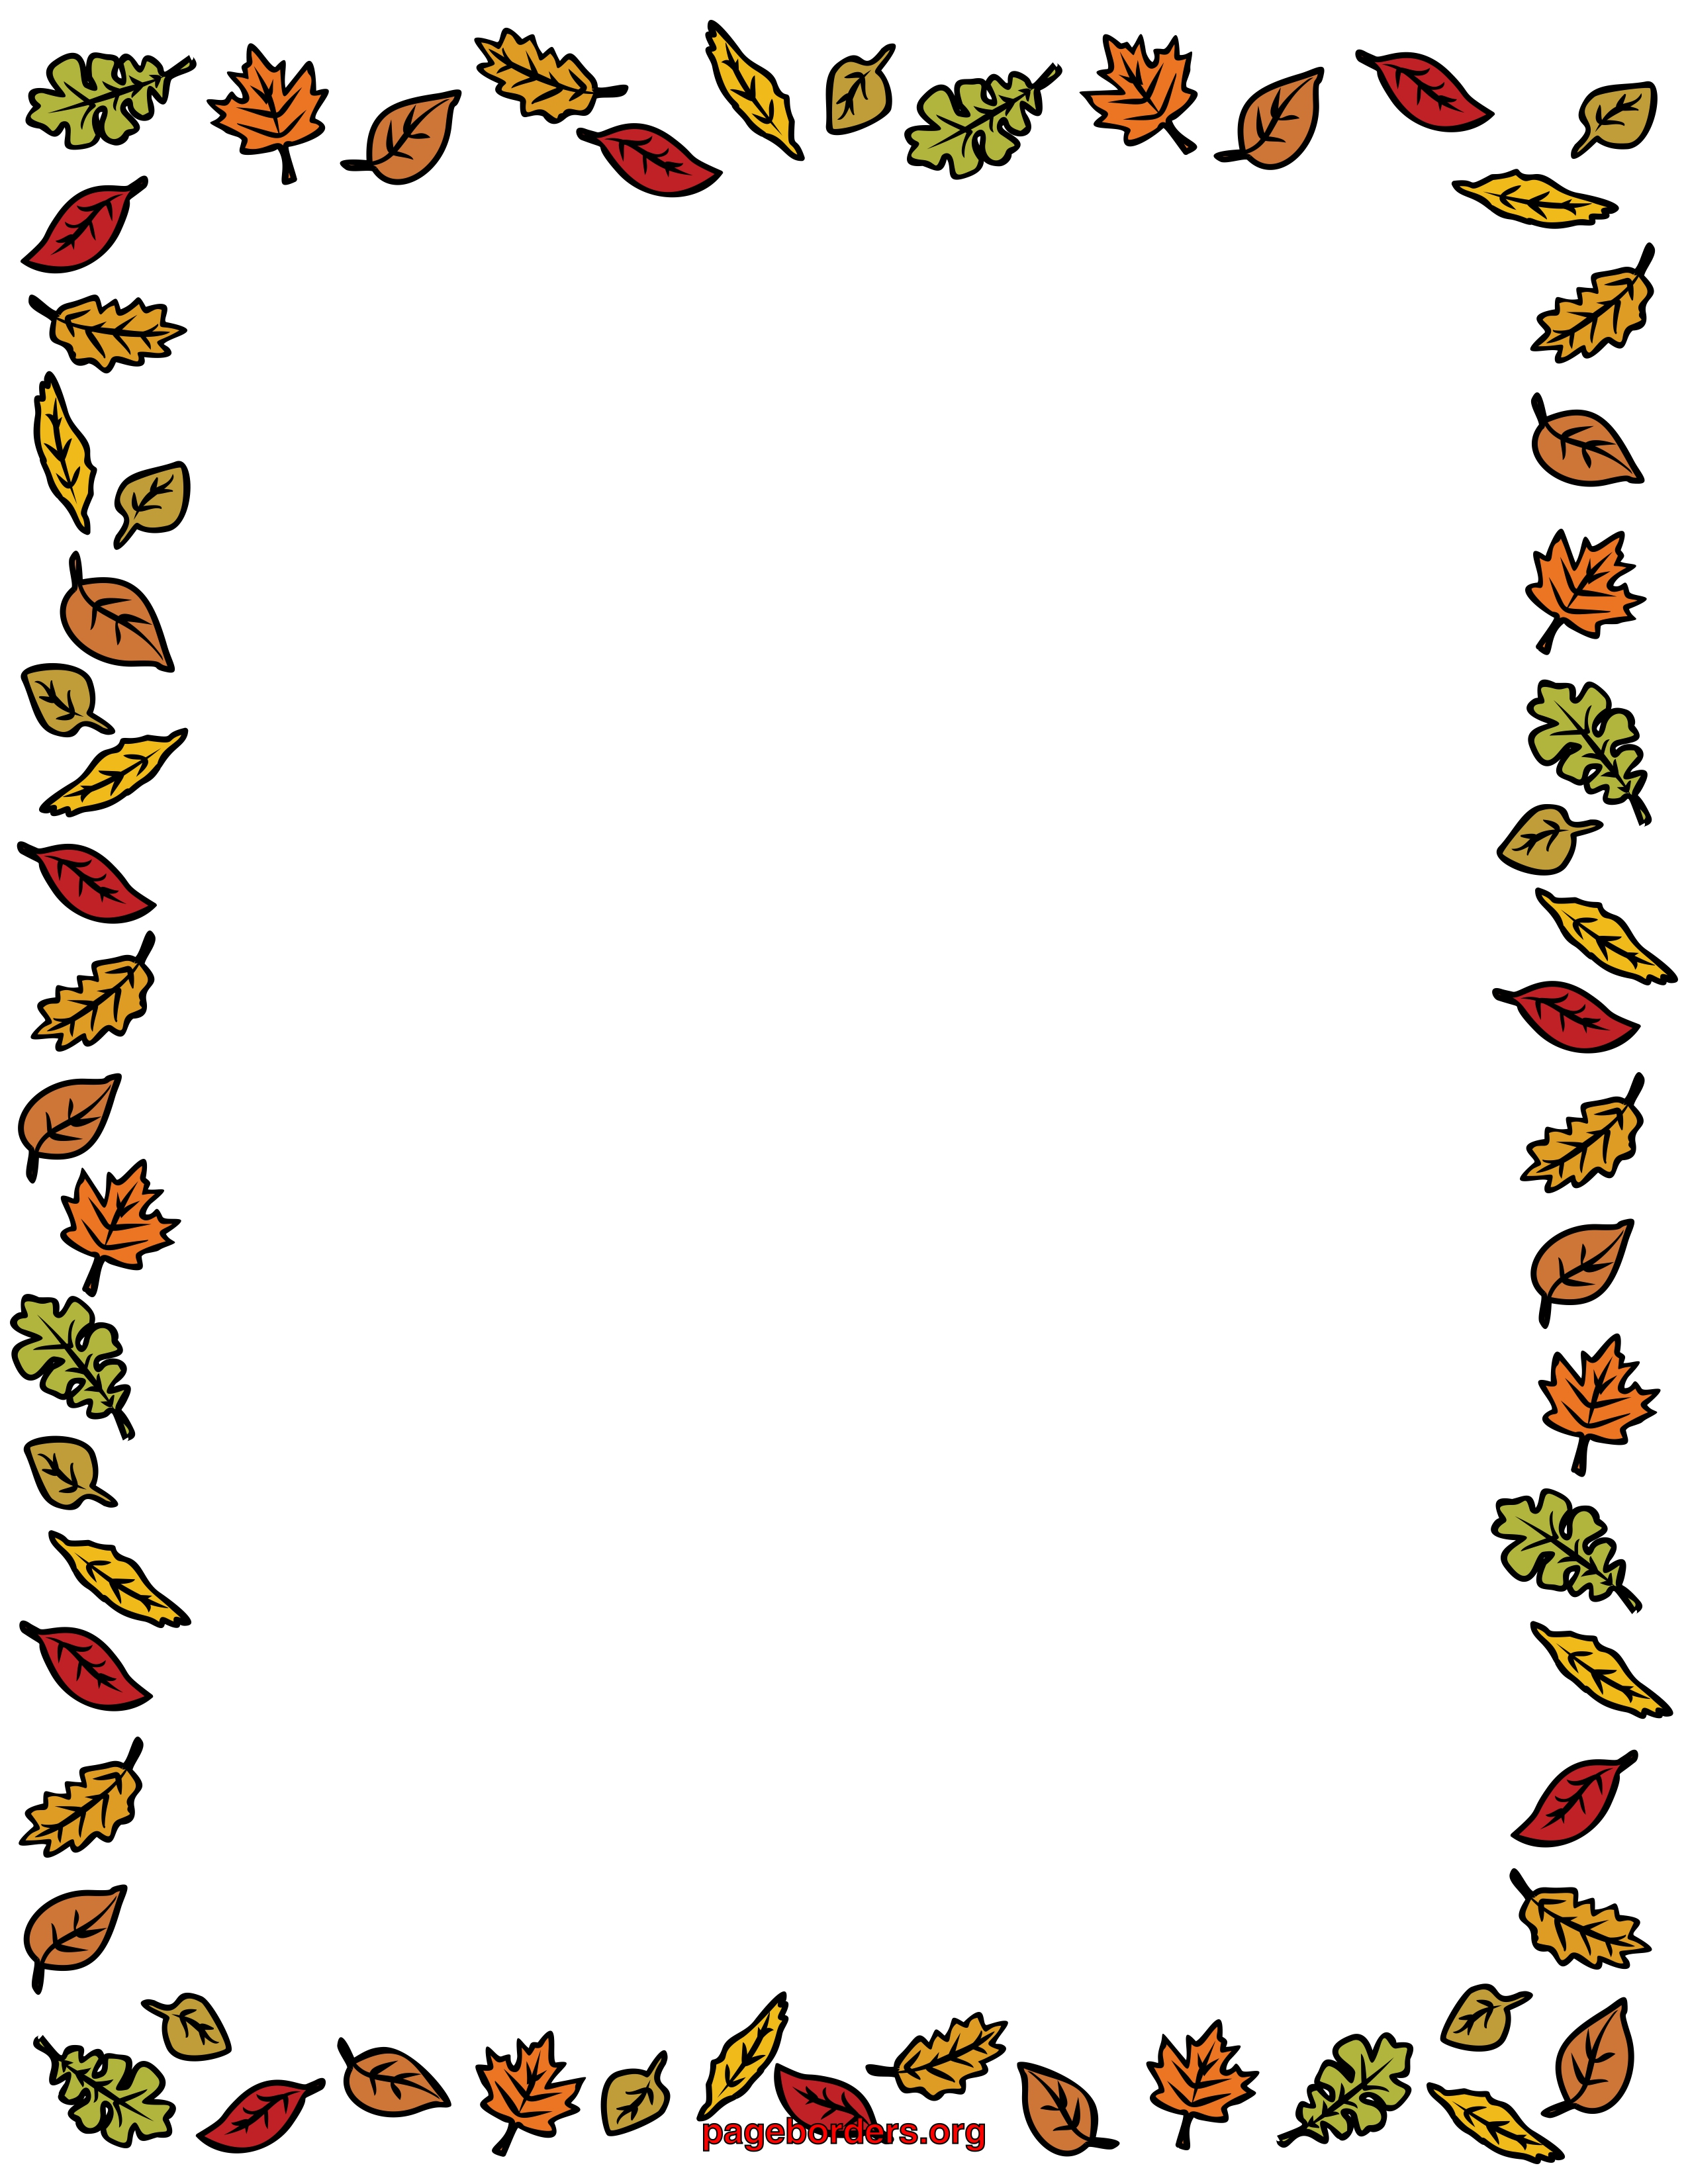 Free Free Document Borders, Download Free Clip Art, Free Clip Art On - Free Printable Clip Art Borders